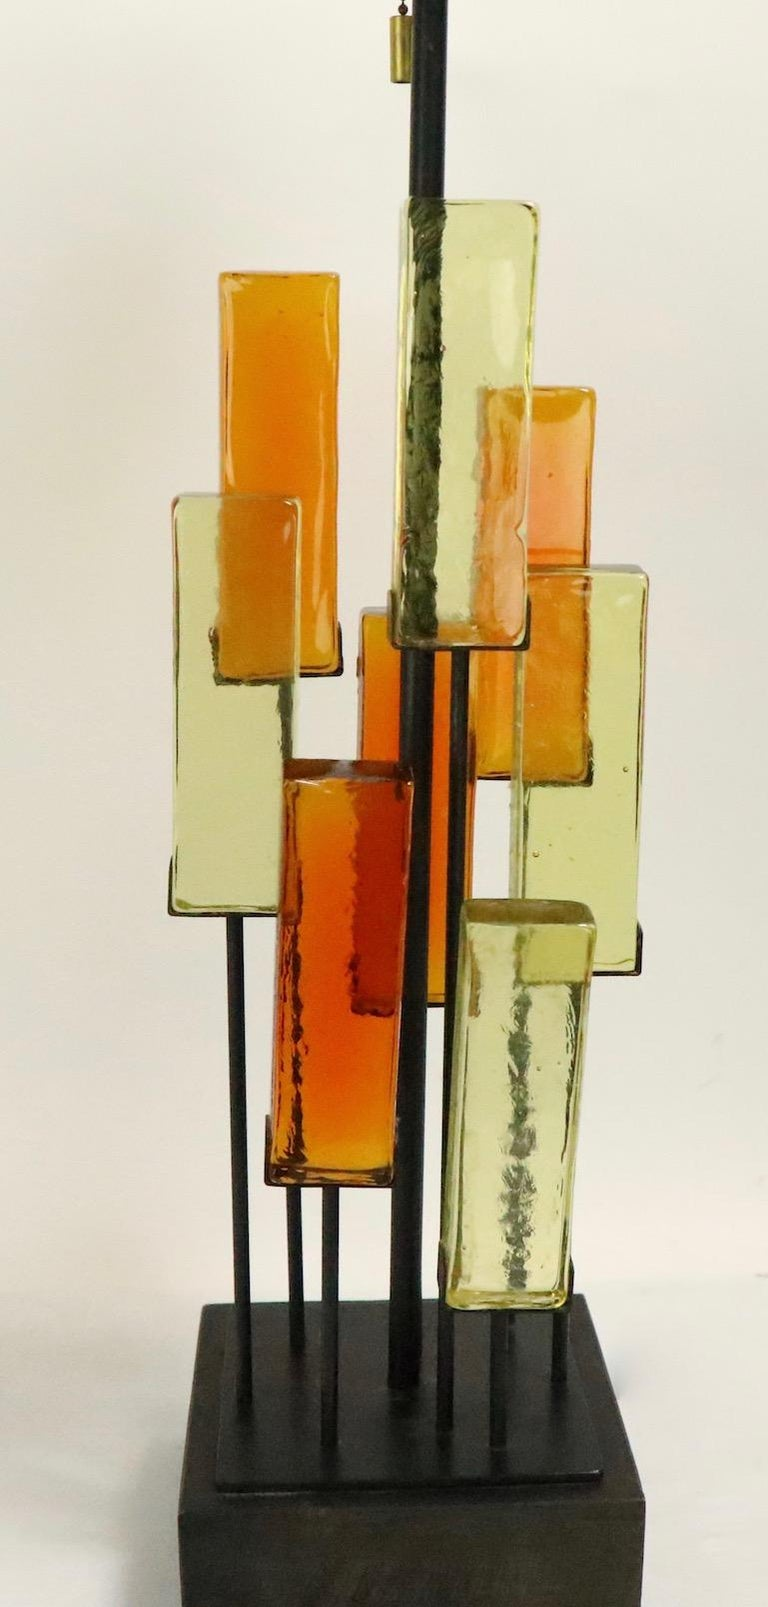 Wood Brutalist Glass Block Table Lamp Attributed to Thurston for Lightolier For Sale